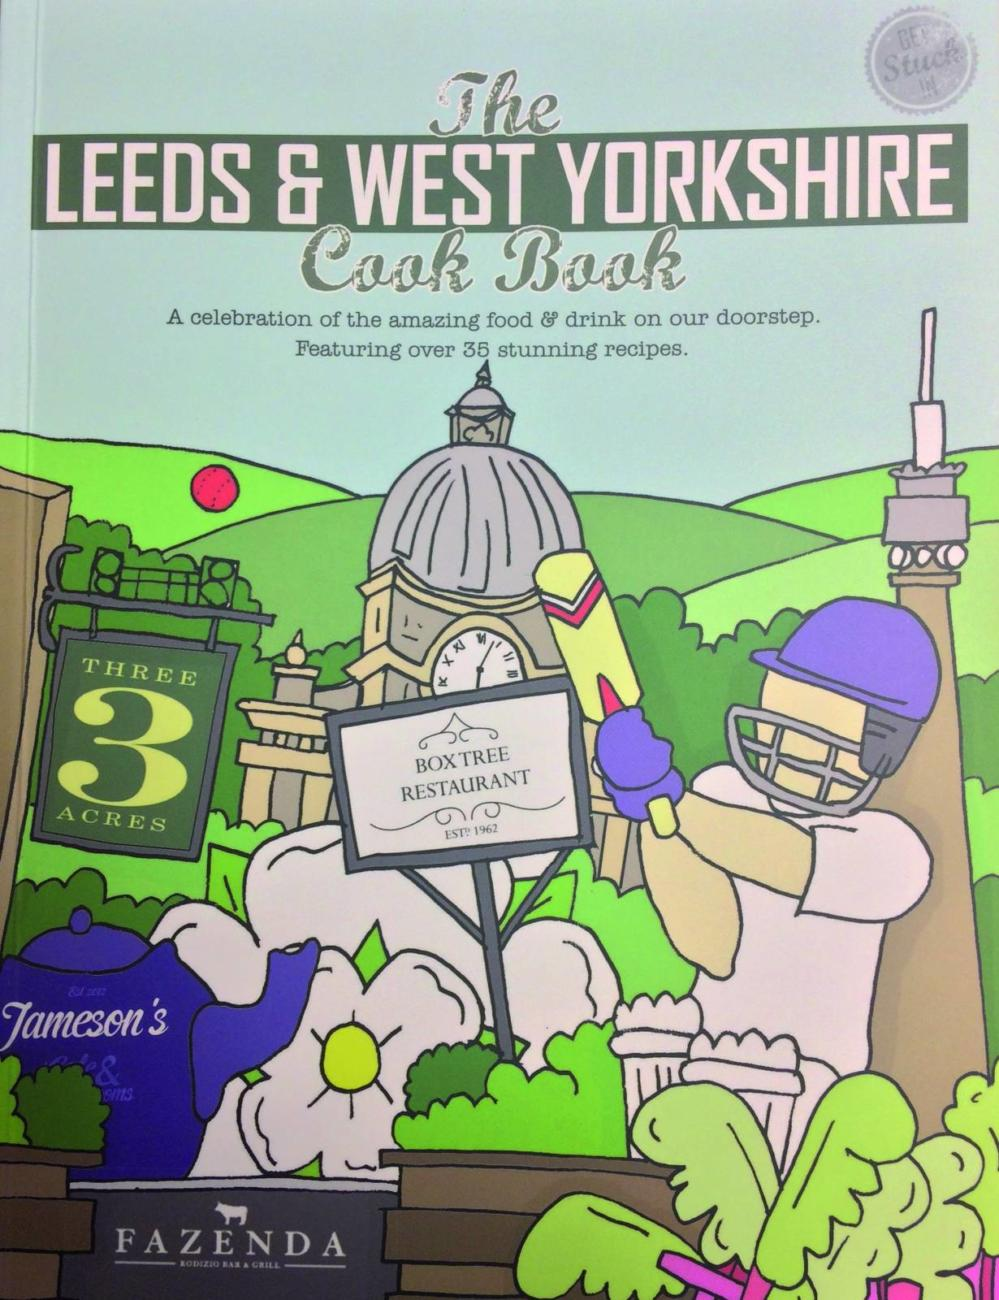 Win a Copy of The Leeds & West Yorkshire Cook Book, courtesy of Jameson's Café & Tea Rooms!